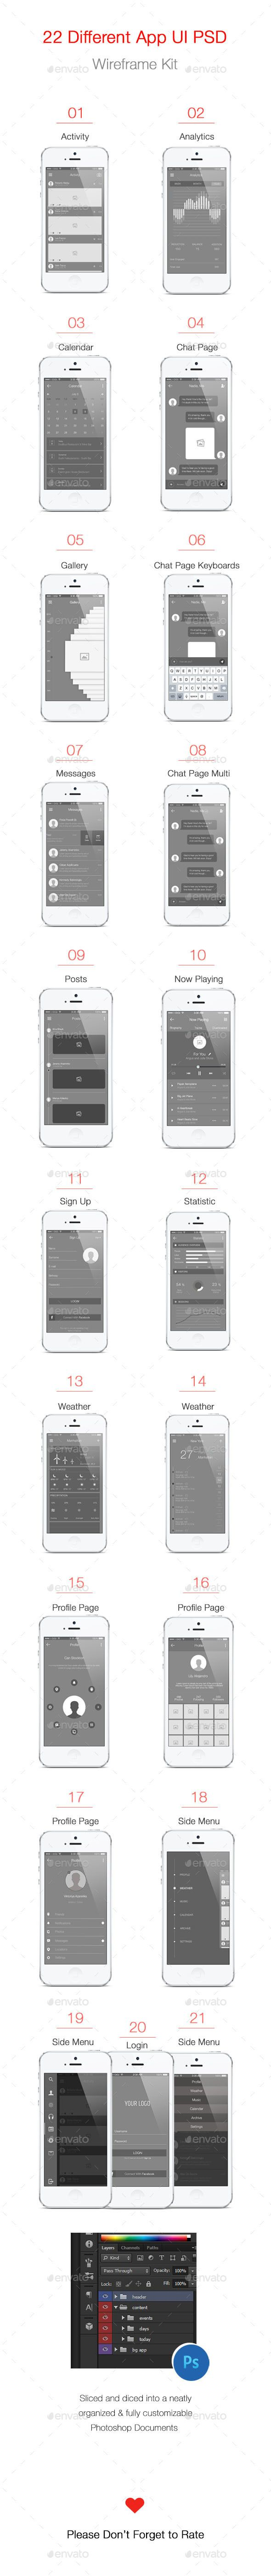 Mobile App Wireframe User Interface Kit Template PSD #design #ui Download: http://graphicriver.net/item/mobile-app-wireframe-ui-kit/13367683?ref=ksioks